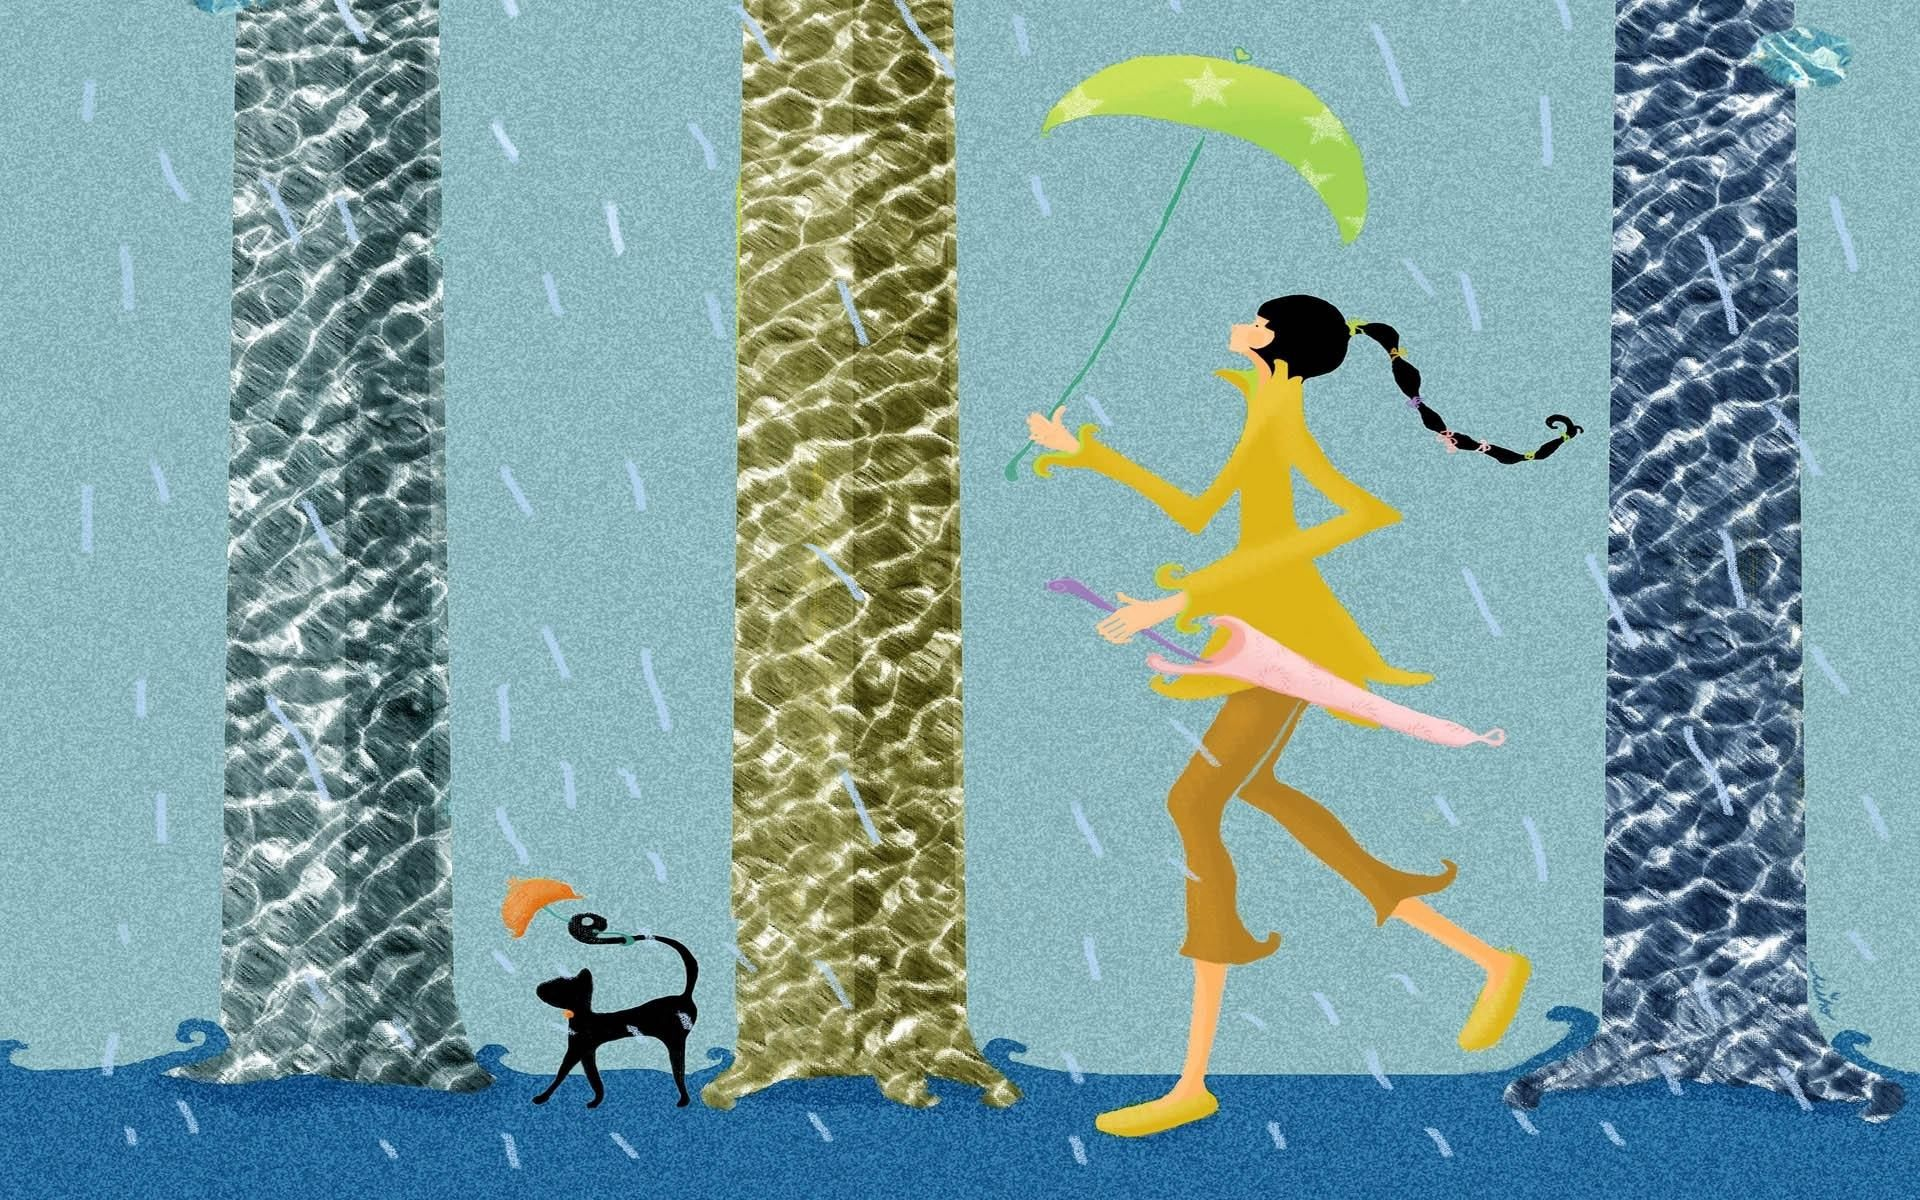 108386 download wallpaper Vector, Girl, Stroll, Pet, Rain, Umbrella screensavers and pictures for free